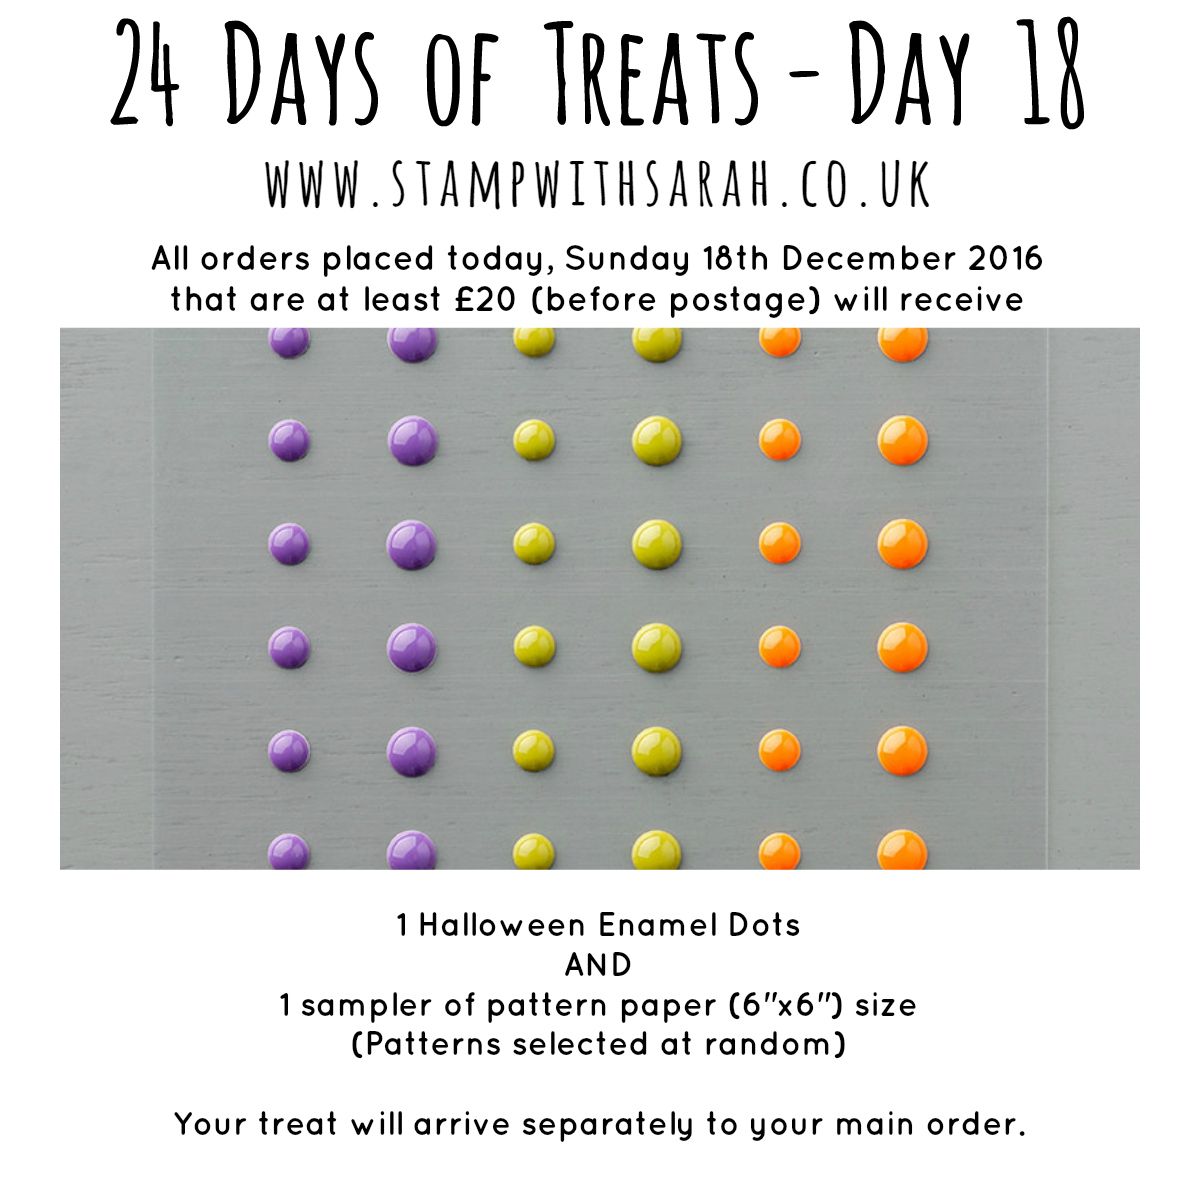 December Giveaway: Day 18 of 24 Days of Treats